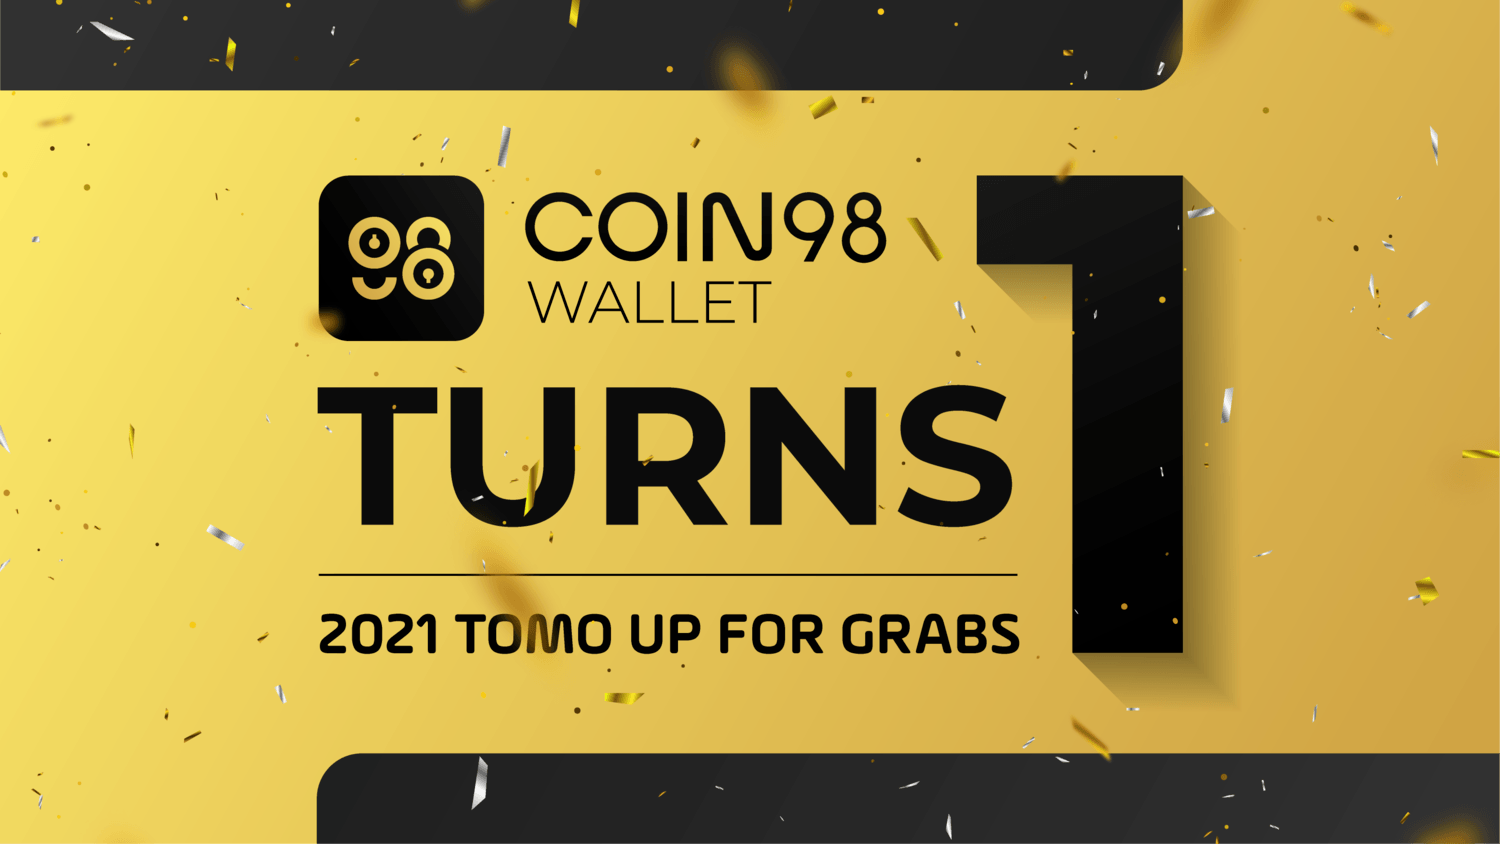 Coin98 Wallet Turns 2021 TOMO up for Grabs